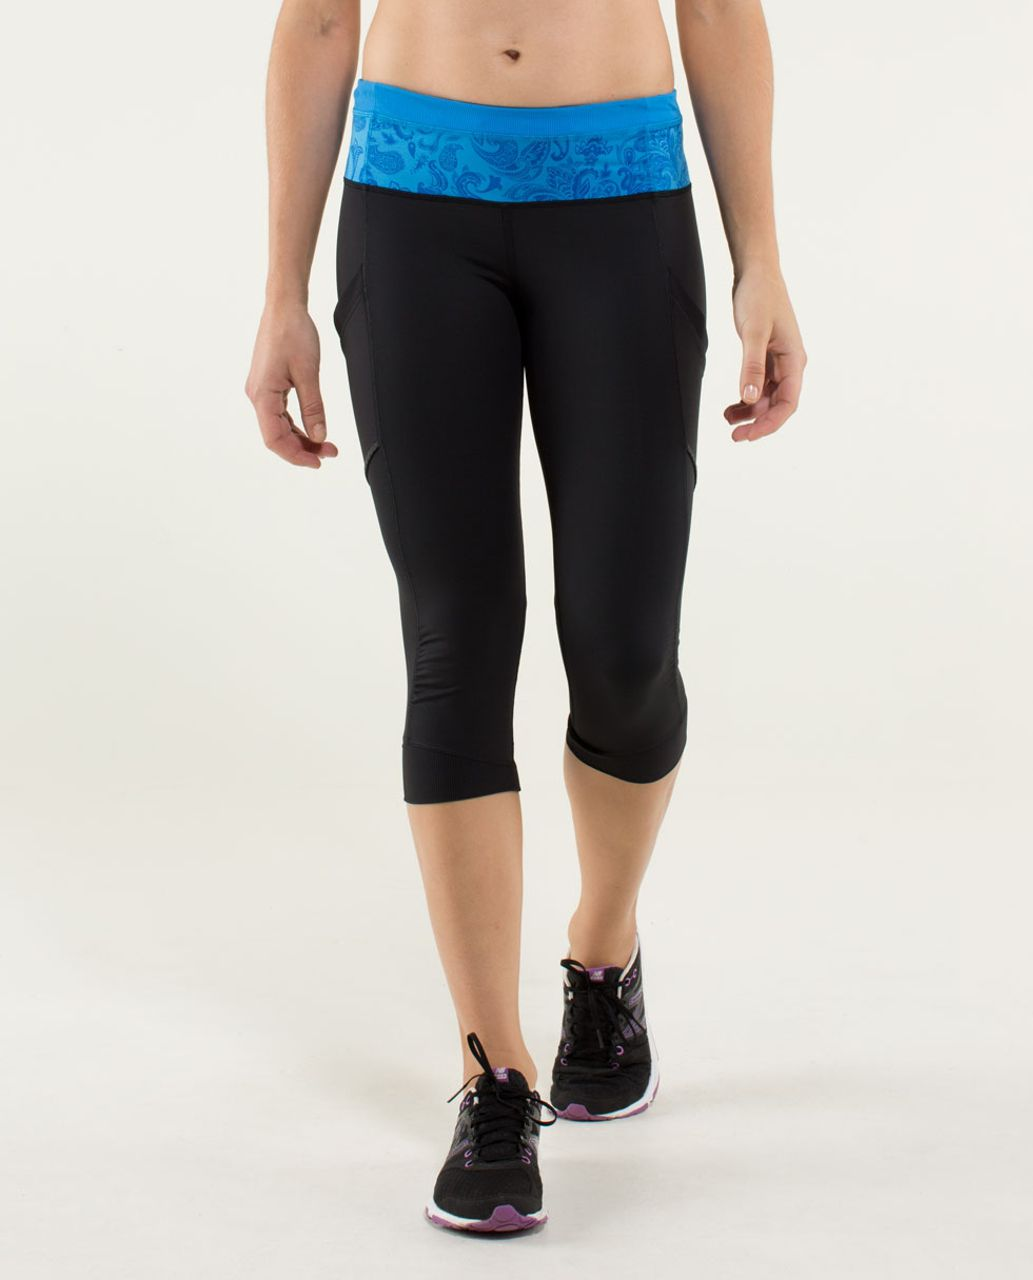 Lululemon Run For Fun Crop - Black / Paisley Cornflower / Cornflower